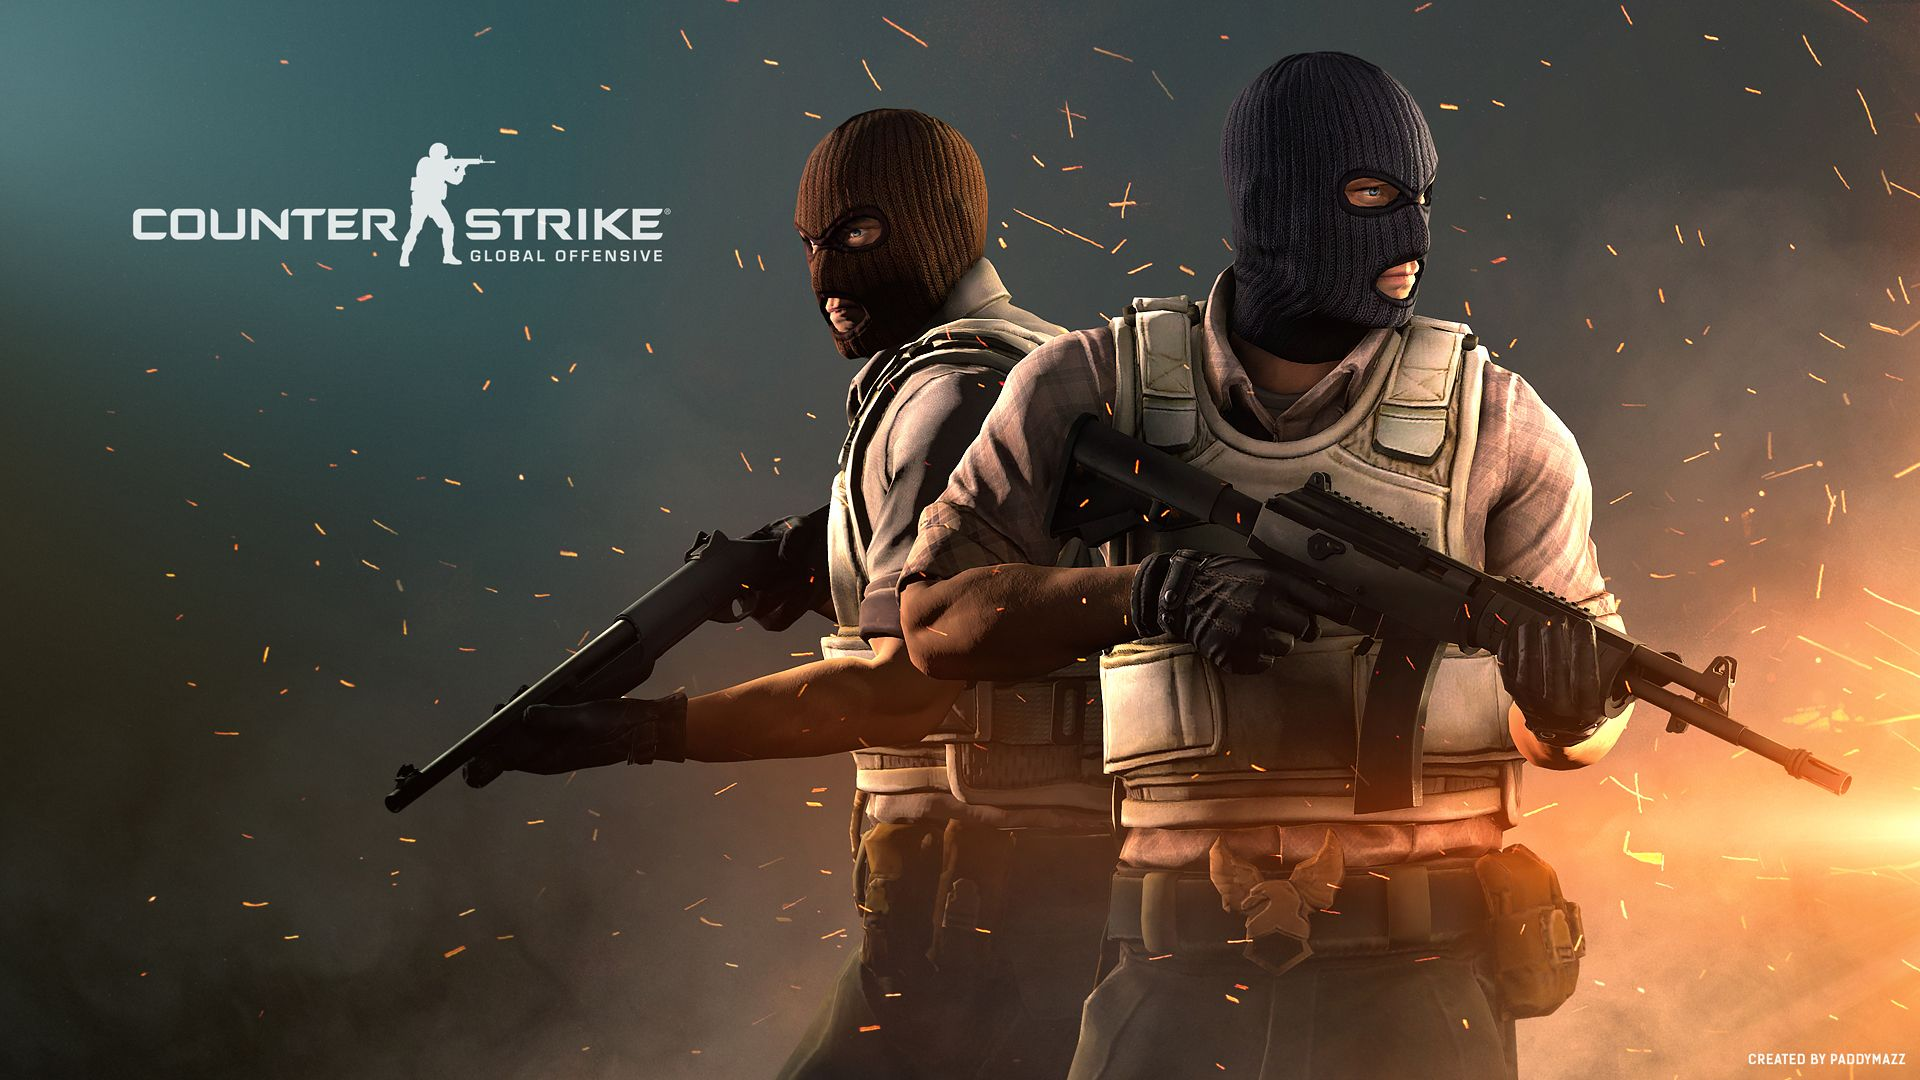 csgo wallpaper,action adventure game,pc game,movie,shooter game,action film  (#16554) - WallpaperUse